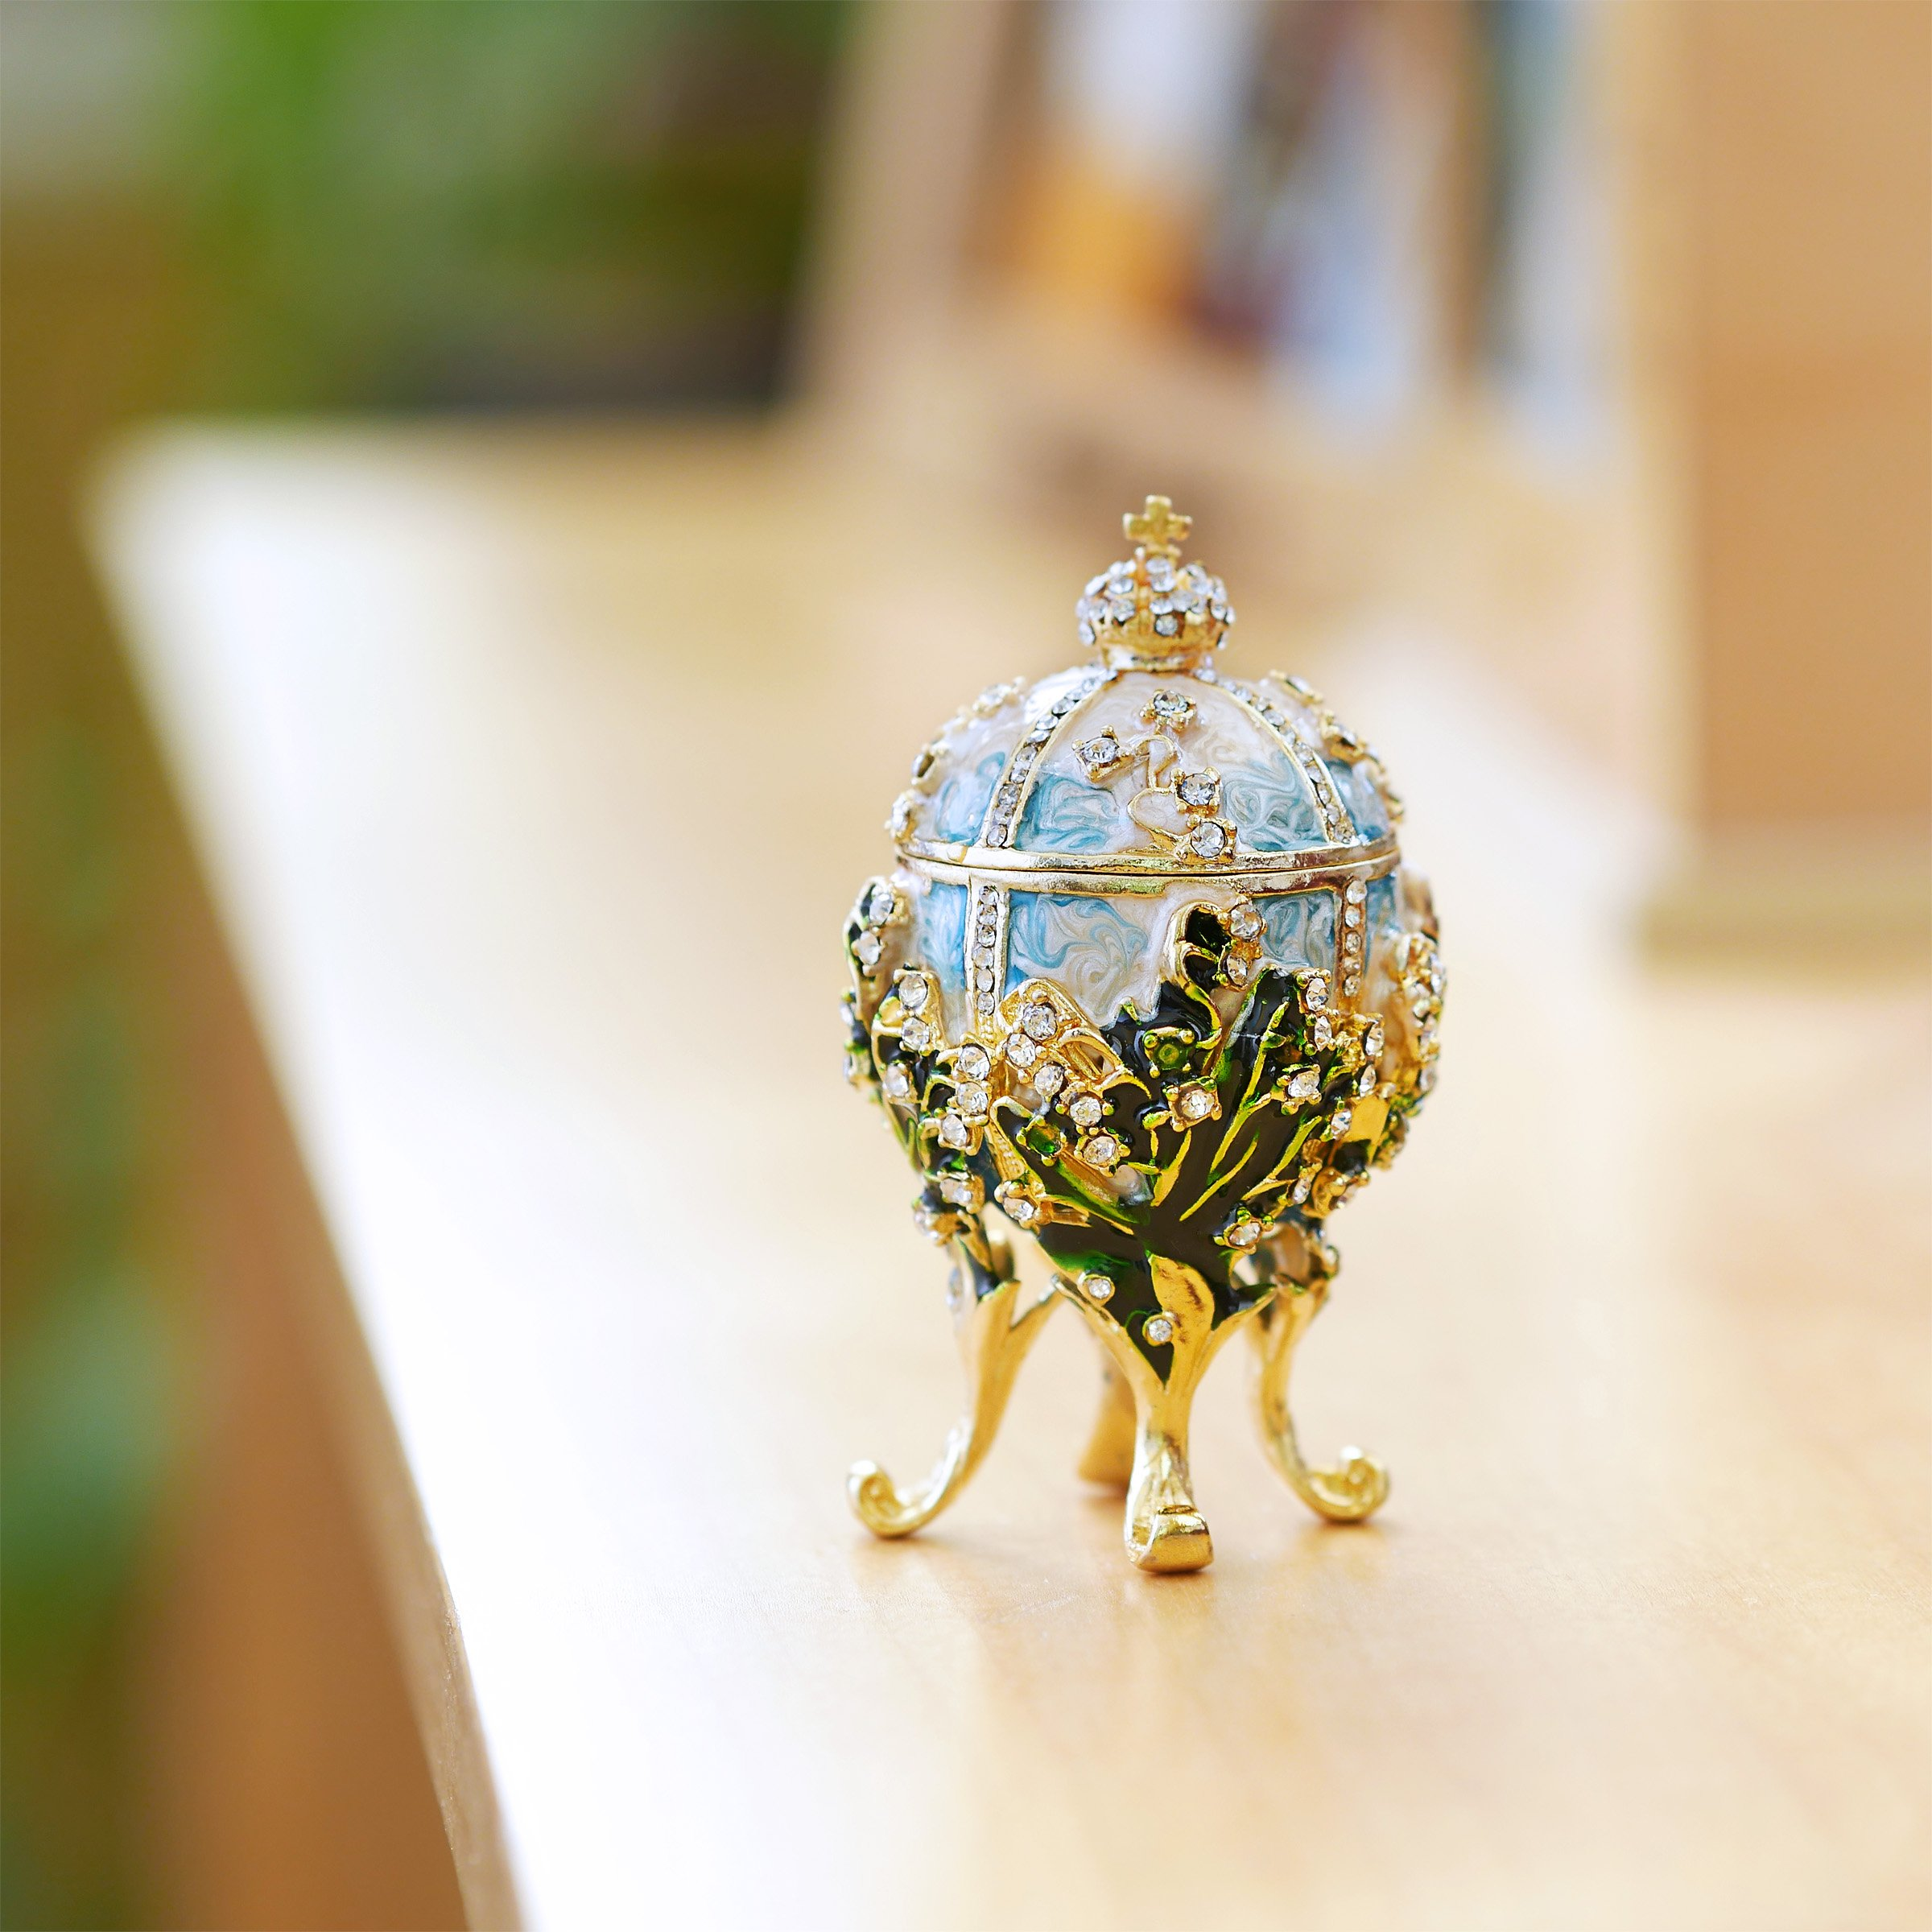 Apropos Hand-Painted Vintage Style Faberge Egg with Rich Enamel and Sparkling Rhinestones Jewelry Trinket Box (S. White Cross) by Apropos (Image #6)